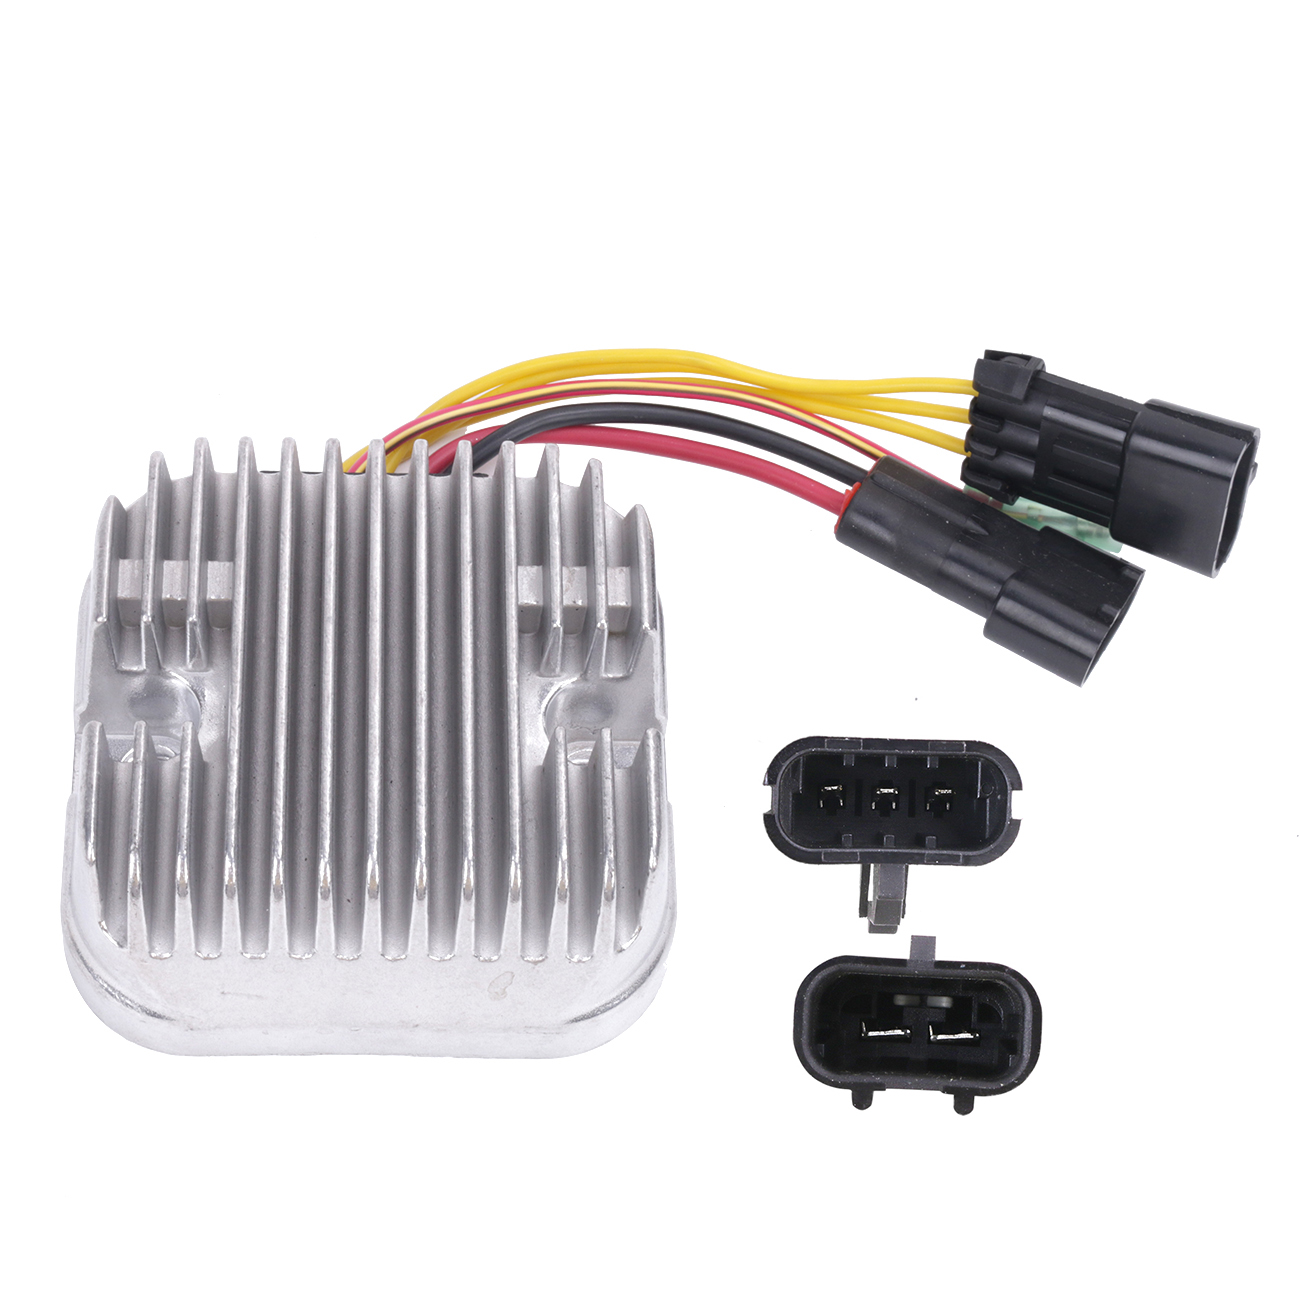 hight resolution of voltage regulator rectifier for polaris atv utv ranger sportsman rzr 800 improved ref 4012748 motorcycle part accessory case